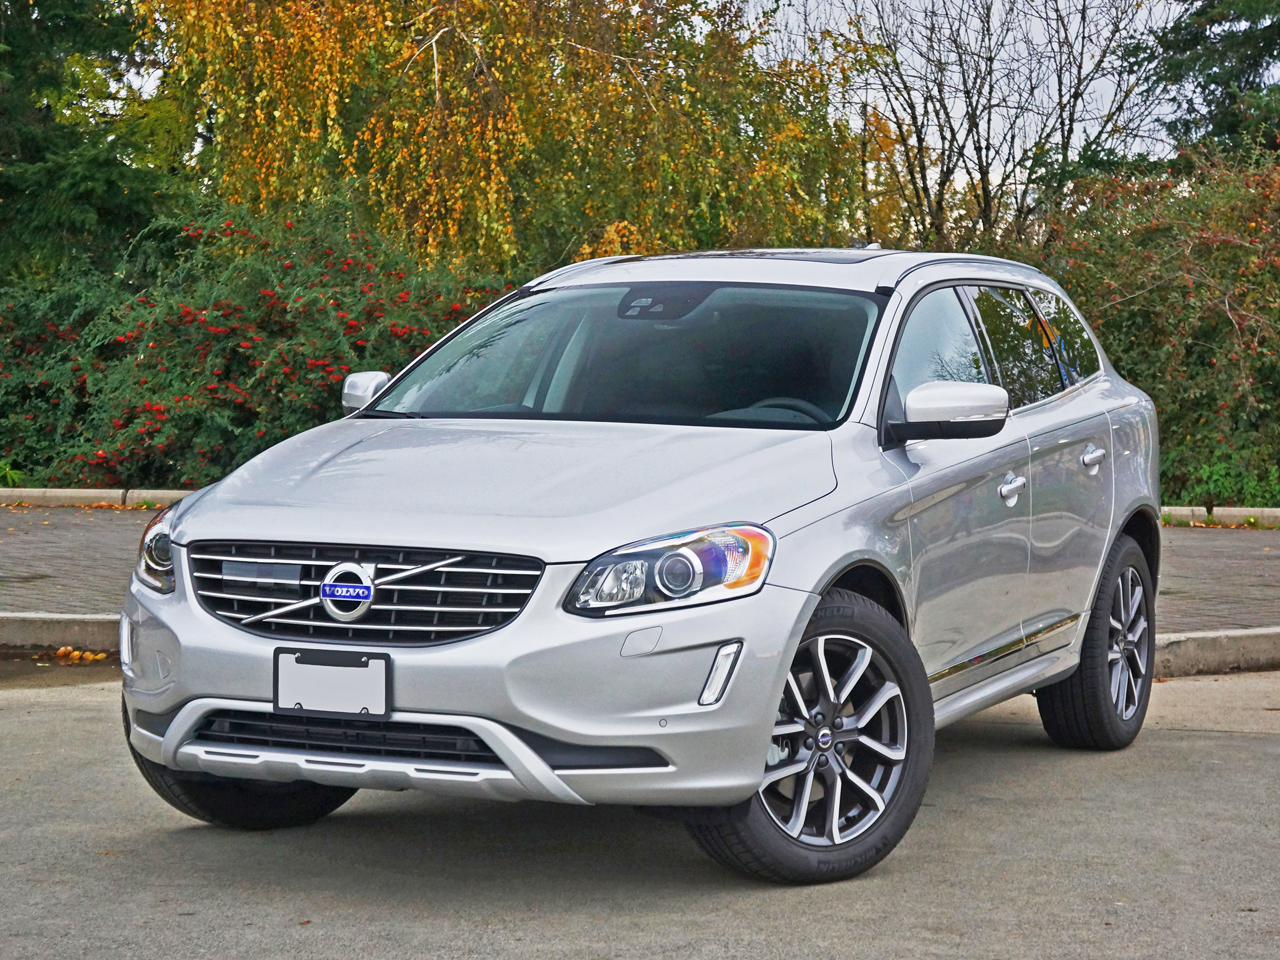 2017 Volvo XC60 T5 Drive-E AWD Special Edition Road Test Review